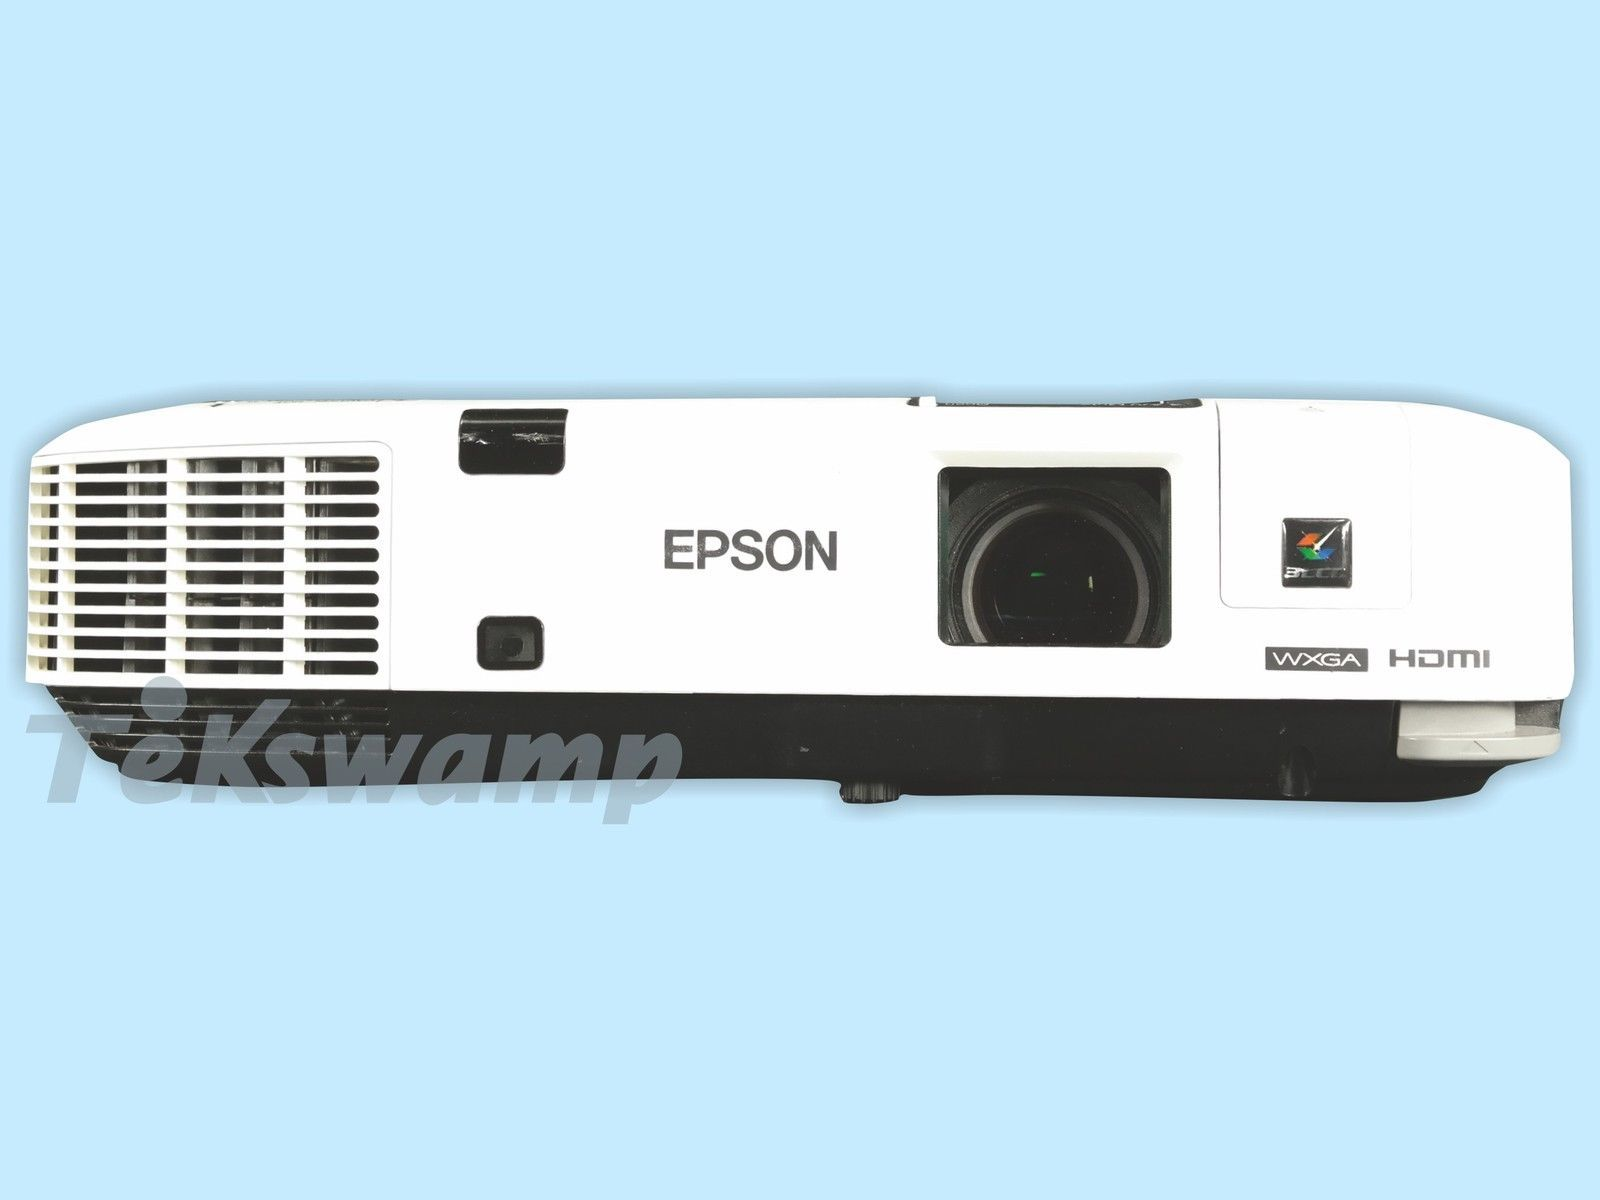 EPSON VSW HDMI LCD Projector ip PCMAC Lumens